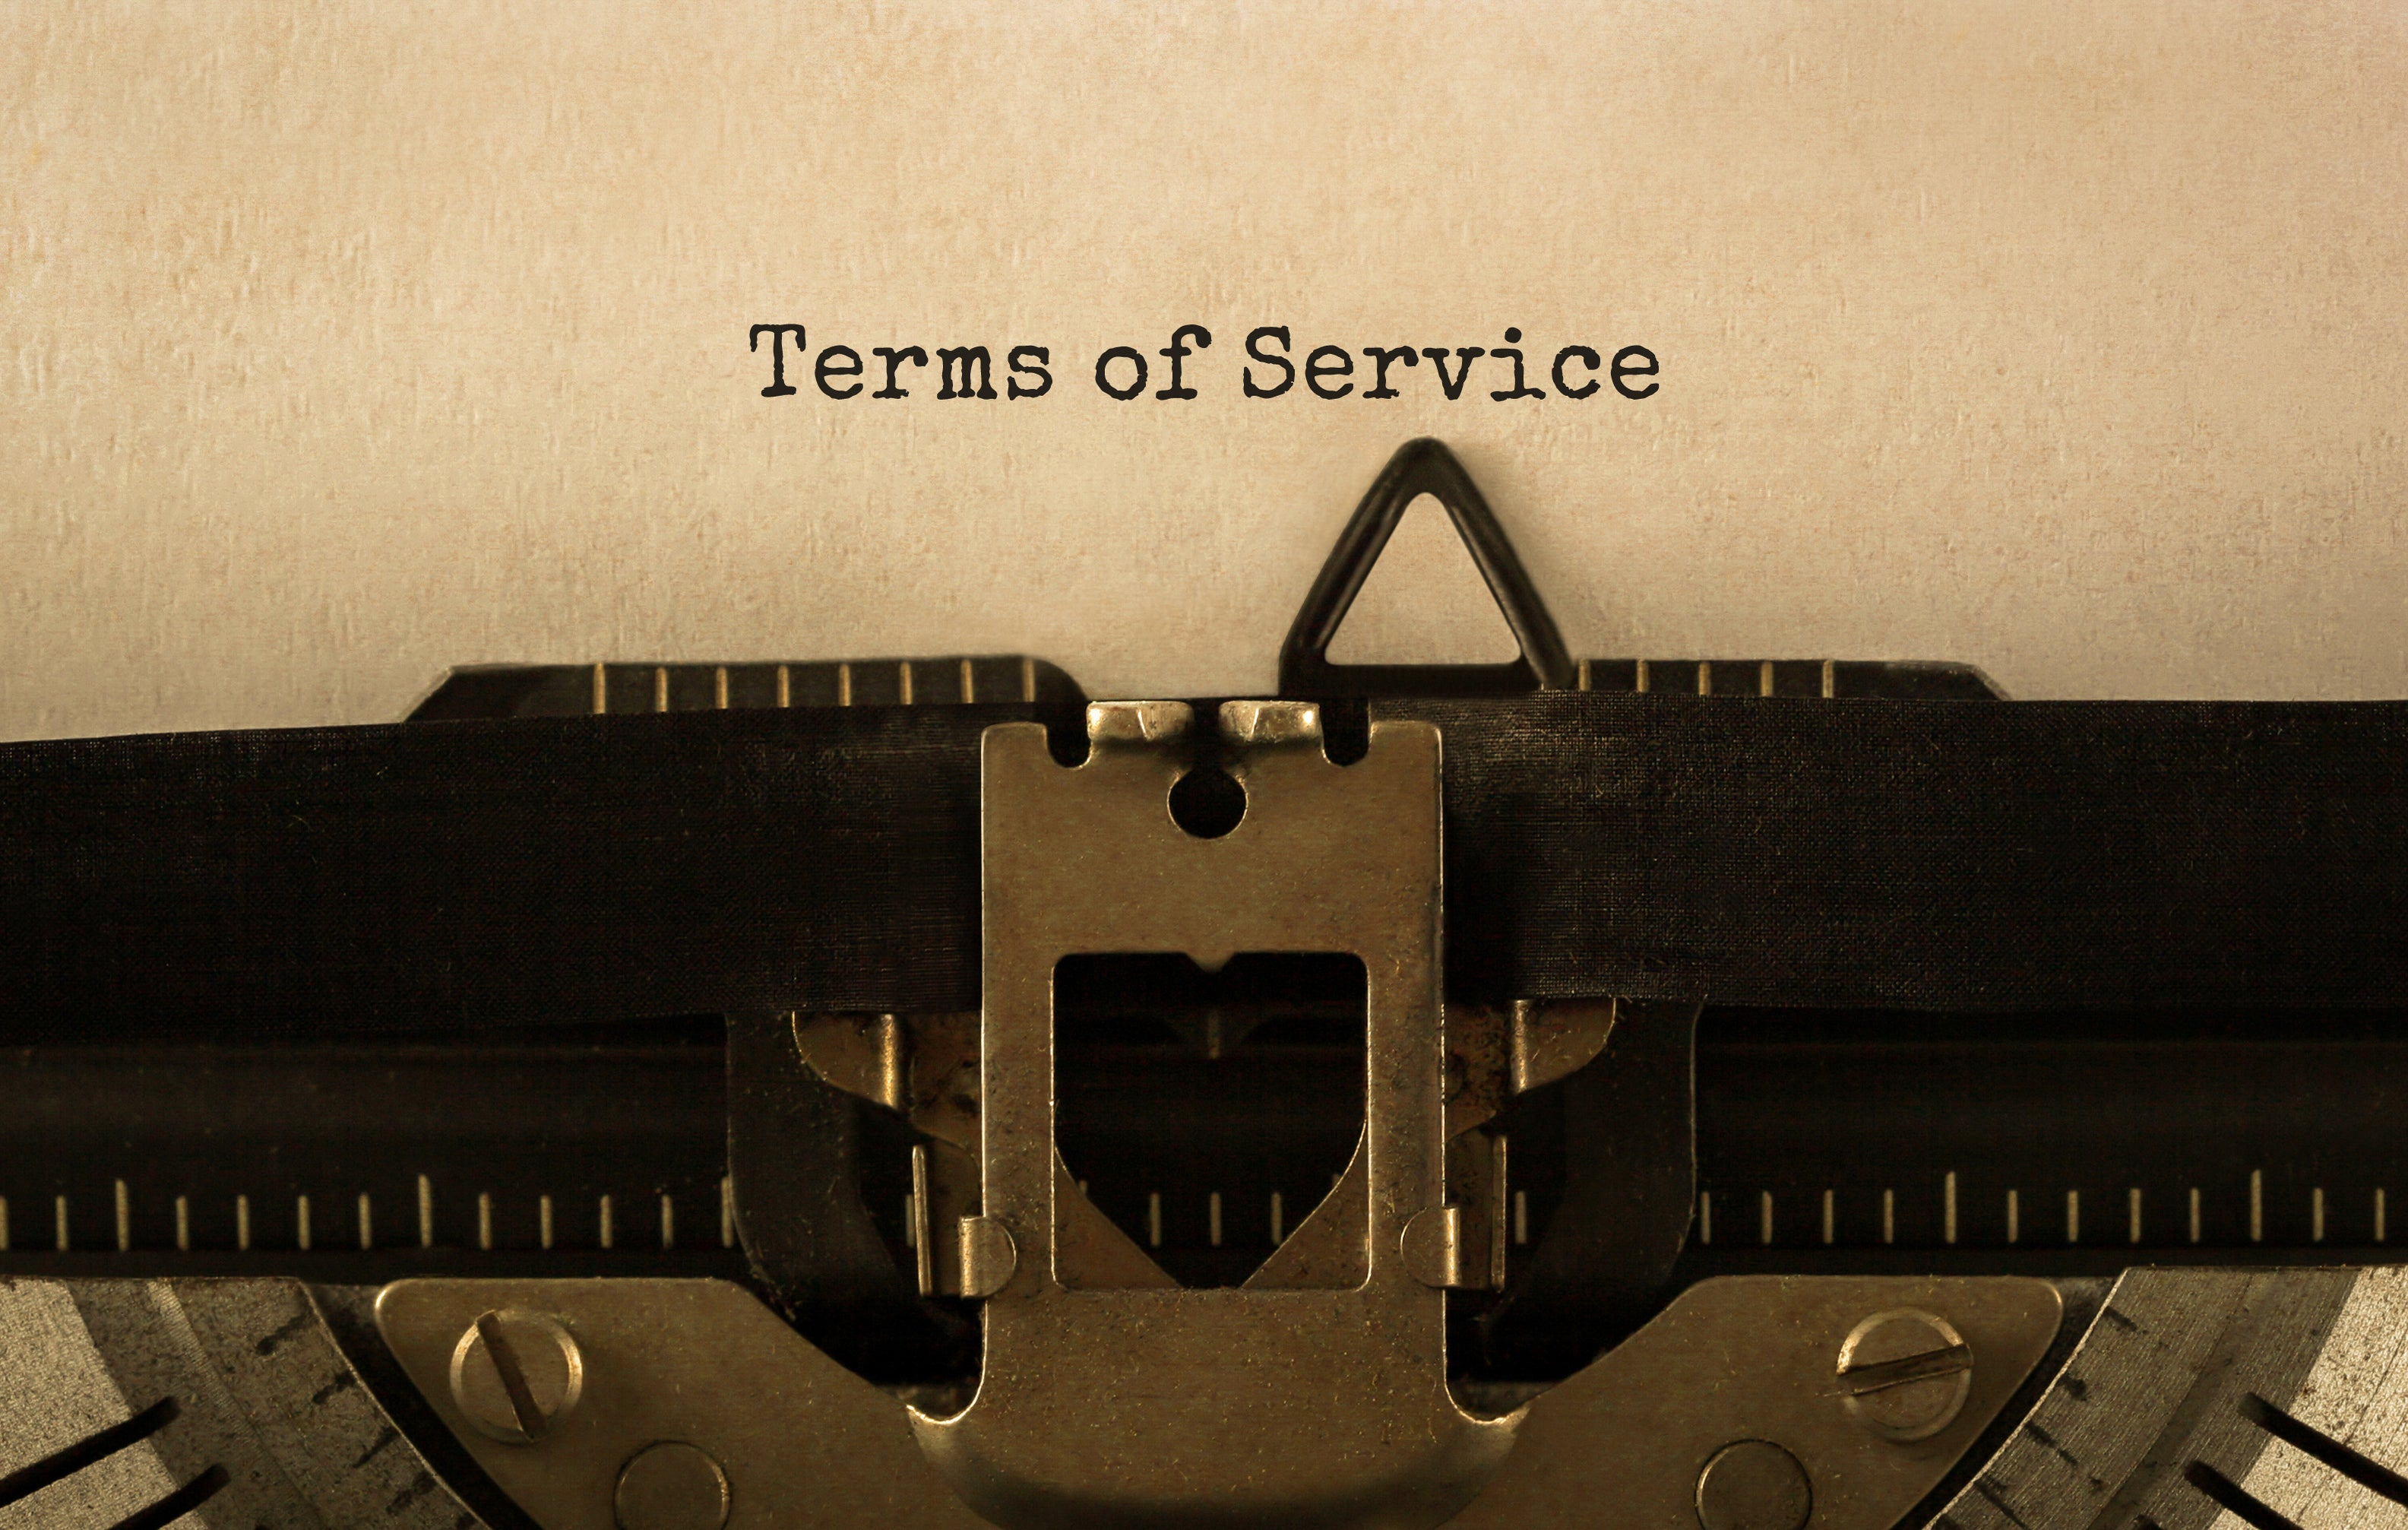 """""""Terms of service"""" appears on a typewriter."""